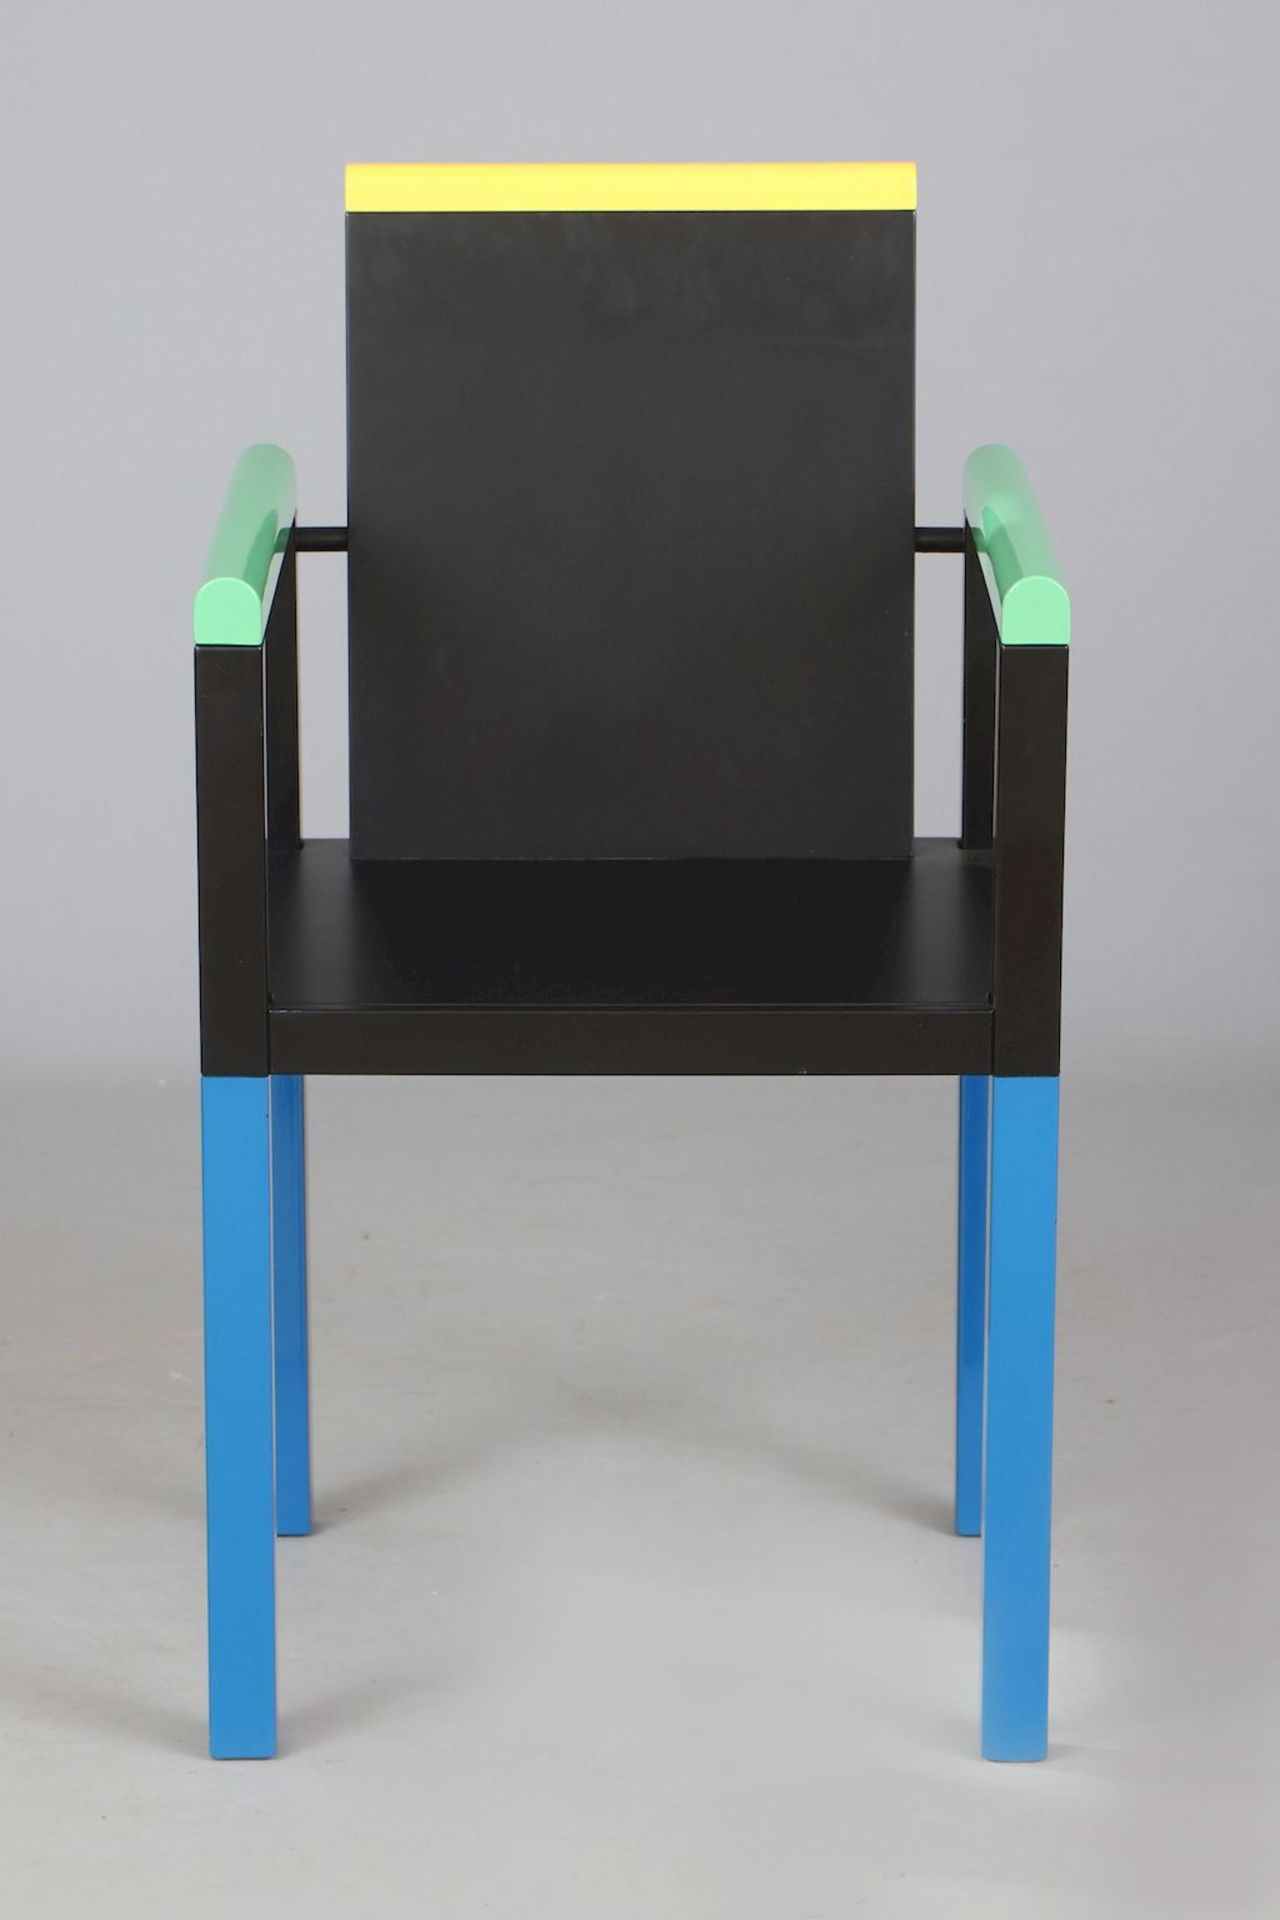 GEORGE JAMES SOWDEN (1942) ¨Palace Chair¨ für MEMPHIS (Milano) - Image 2 of 5